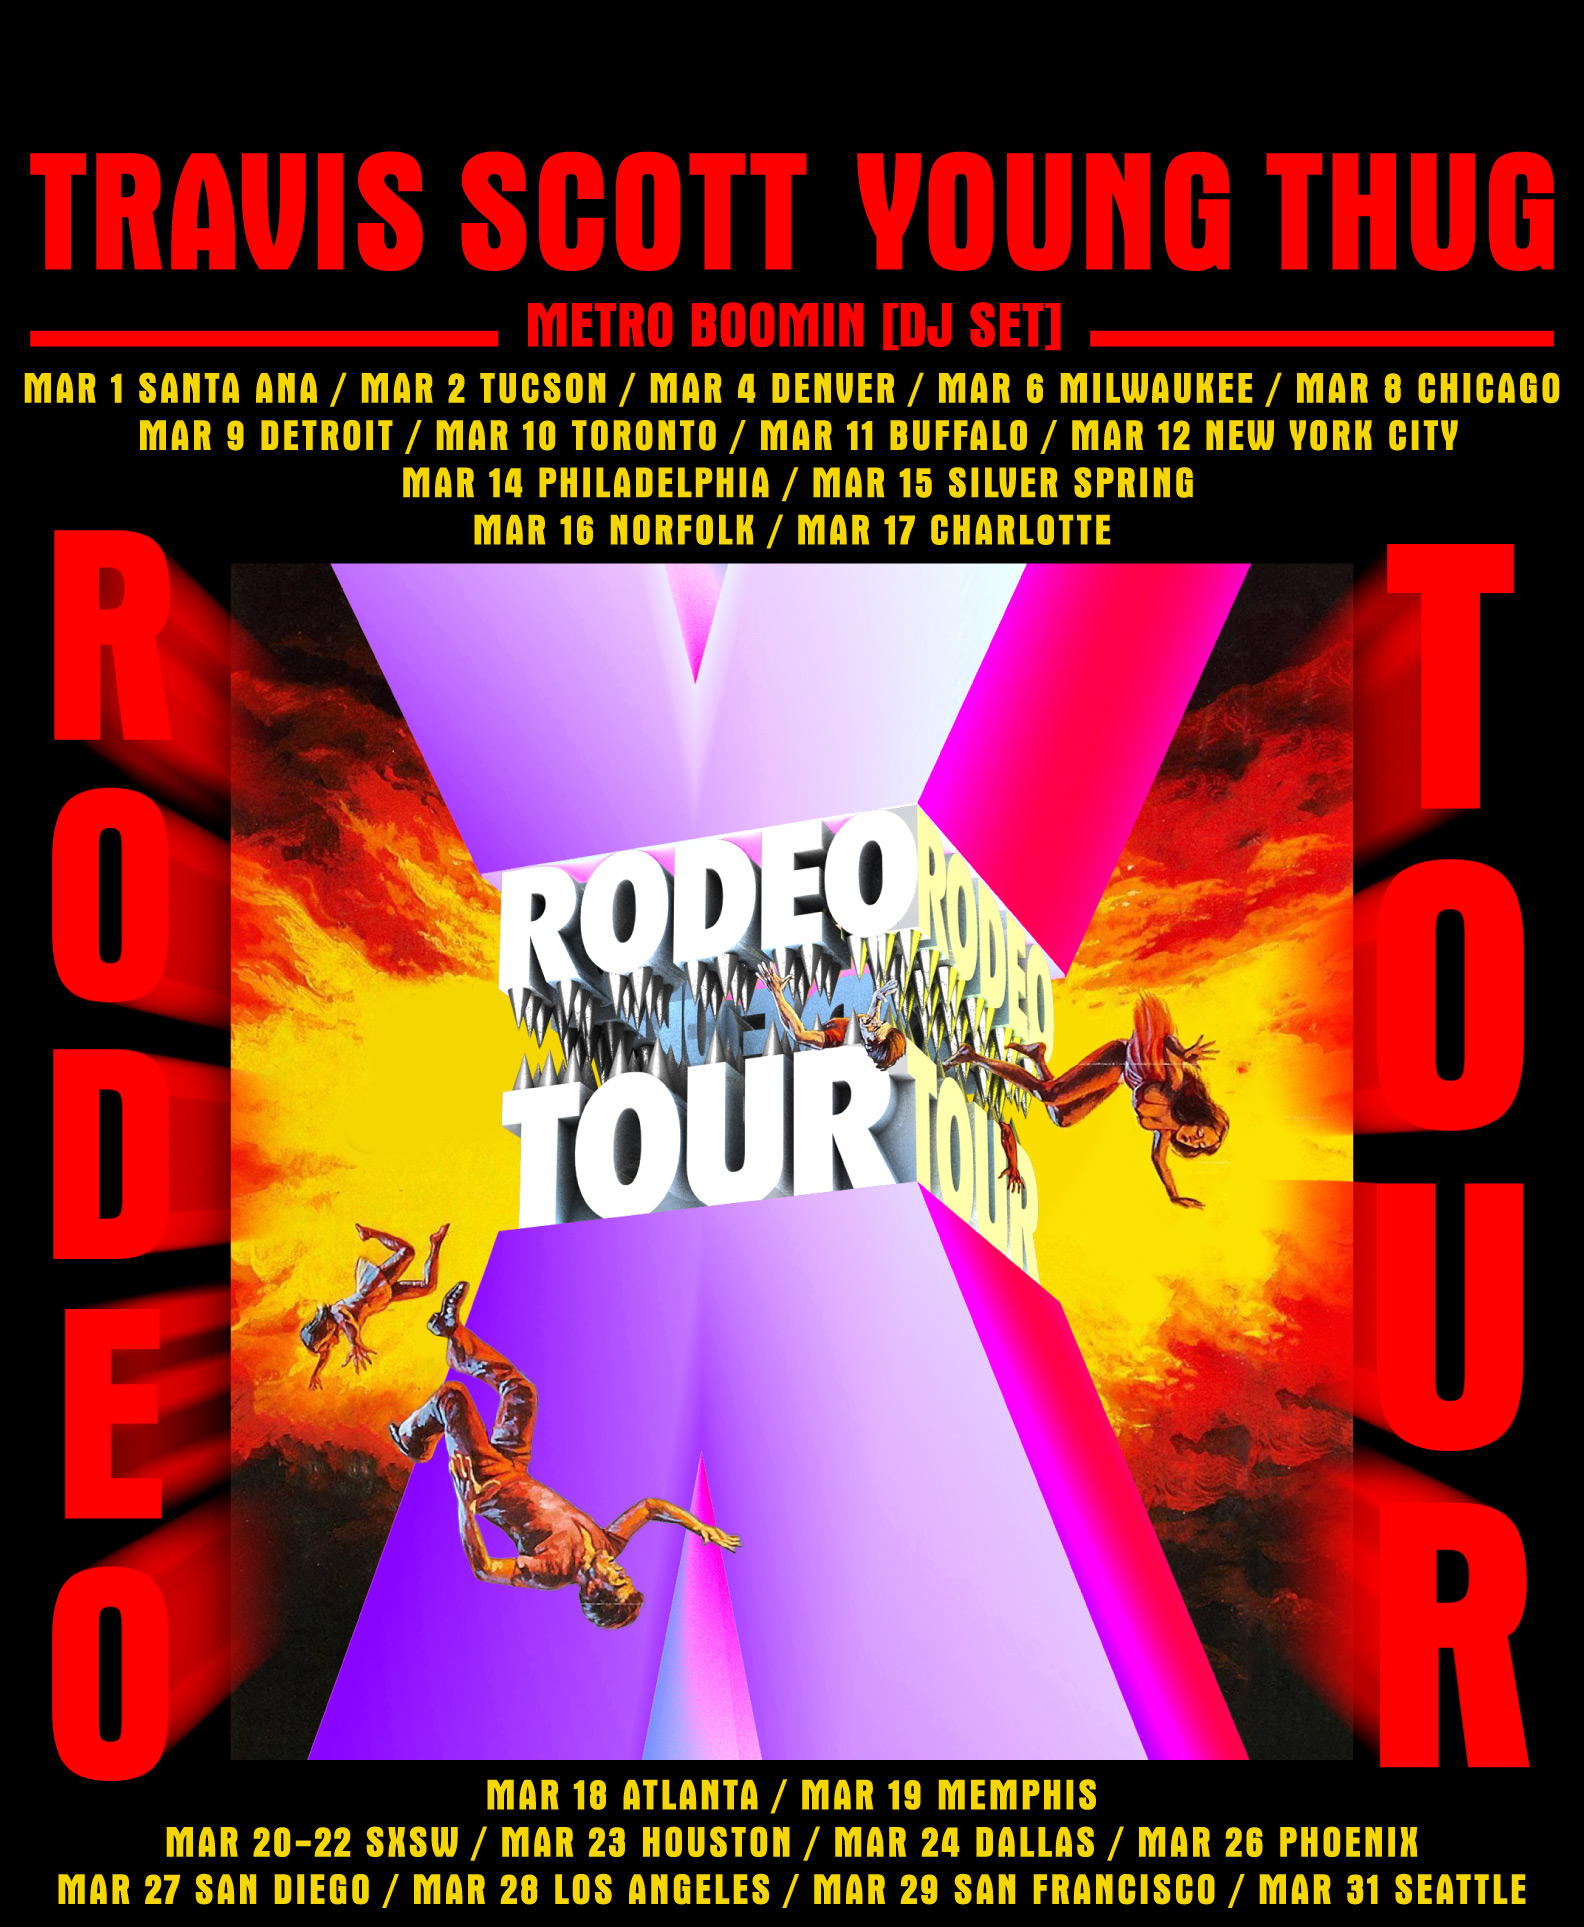 travis-scott-rodeo-tour